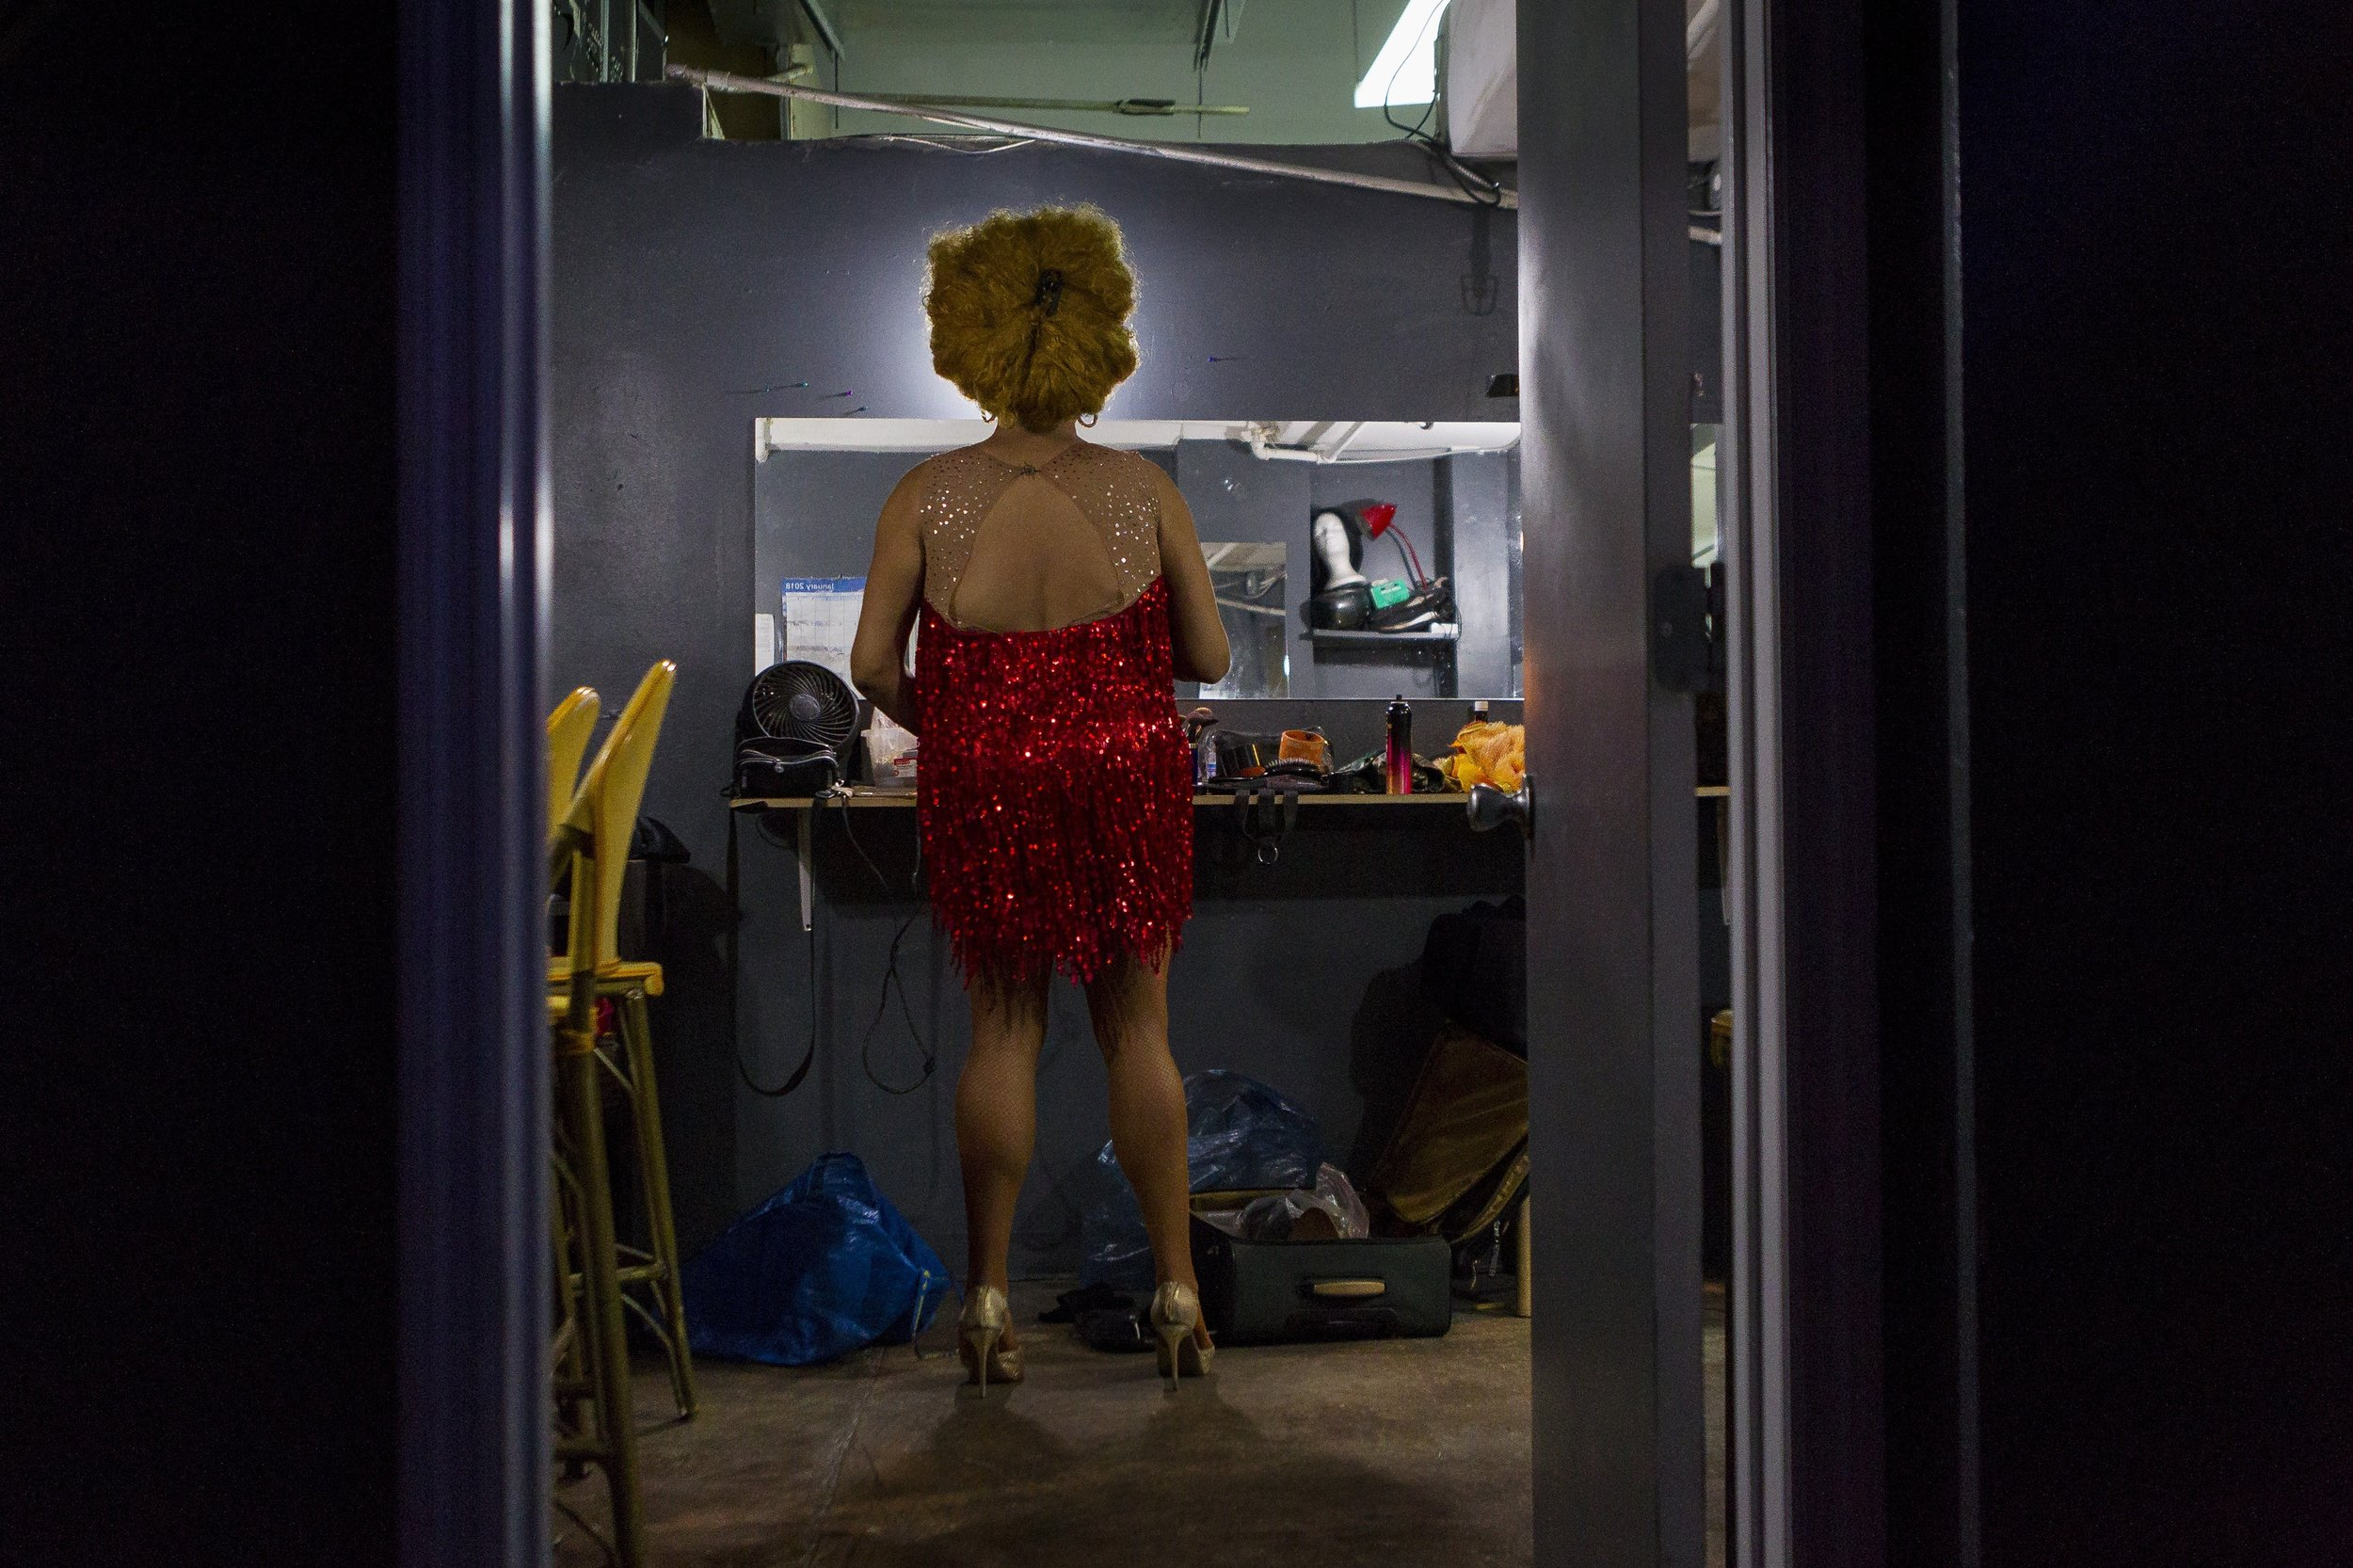 Noel Leon, 37, puts on clothes in a dressing room at the Palace Bar in Miami Beach on Wednesday, Jan. 31, 2018. Leon is an entertainer at the Palace.